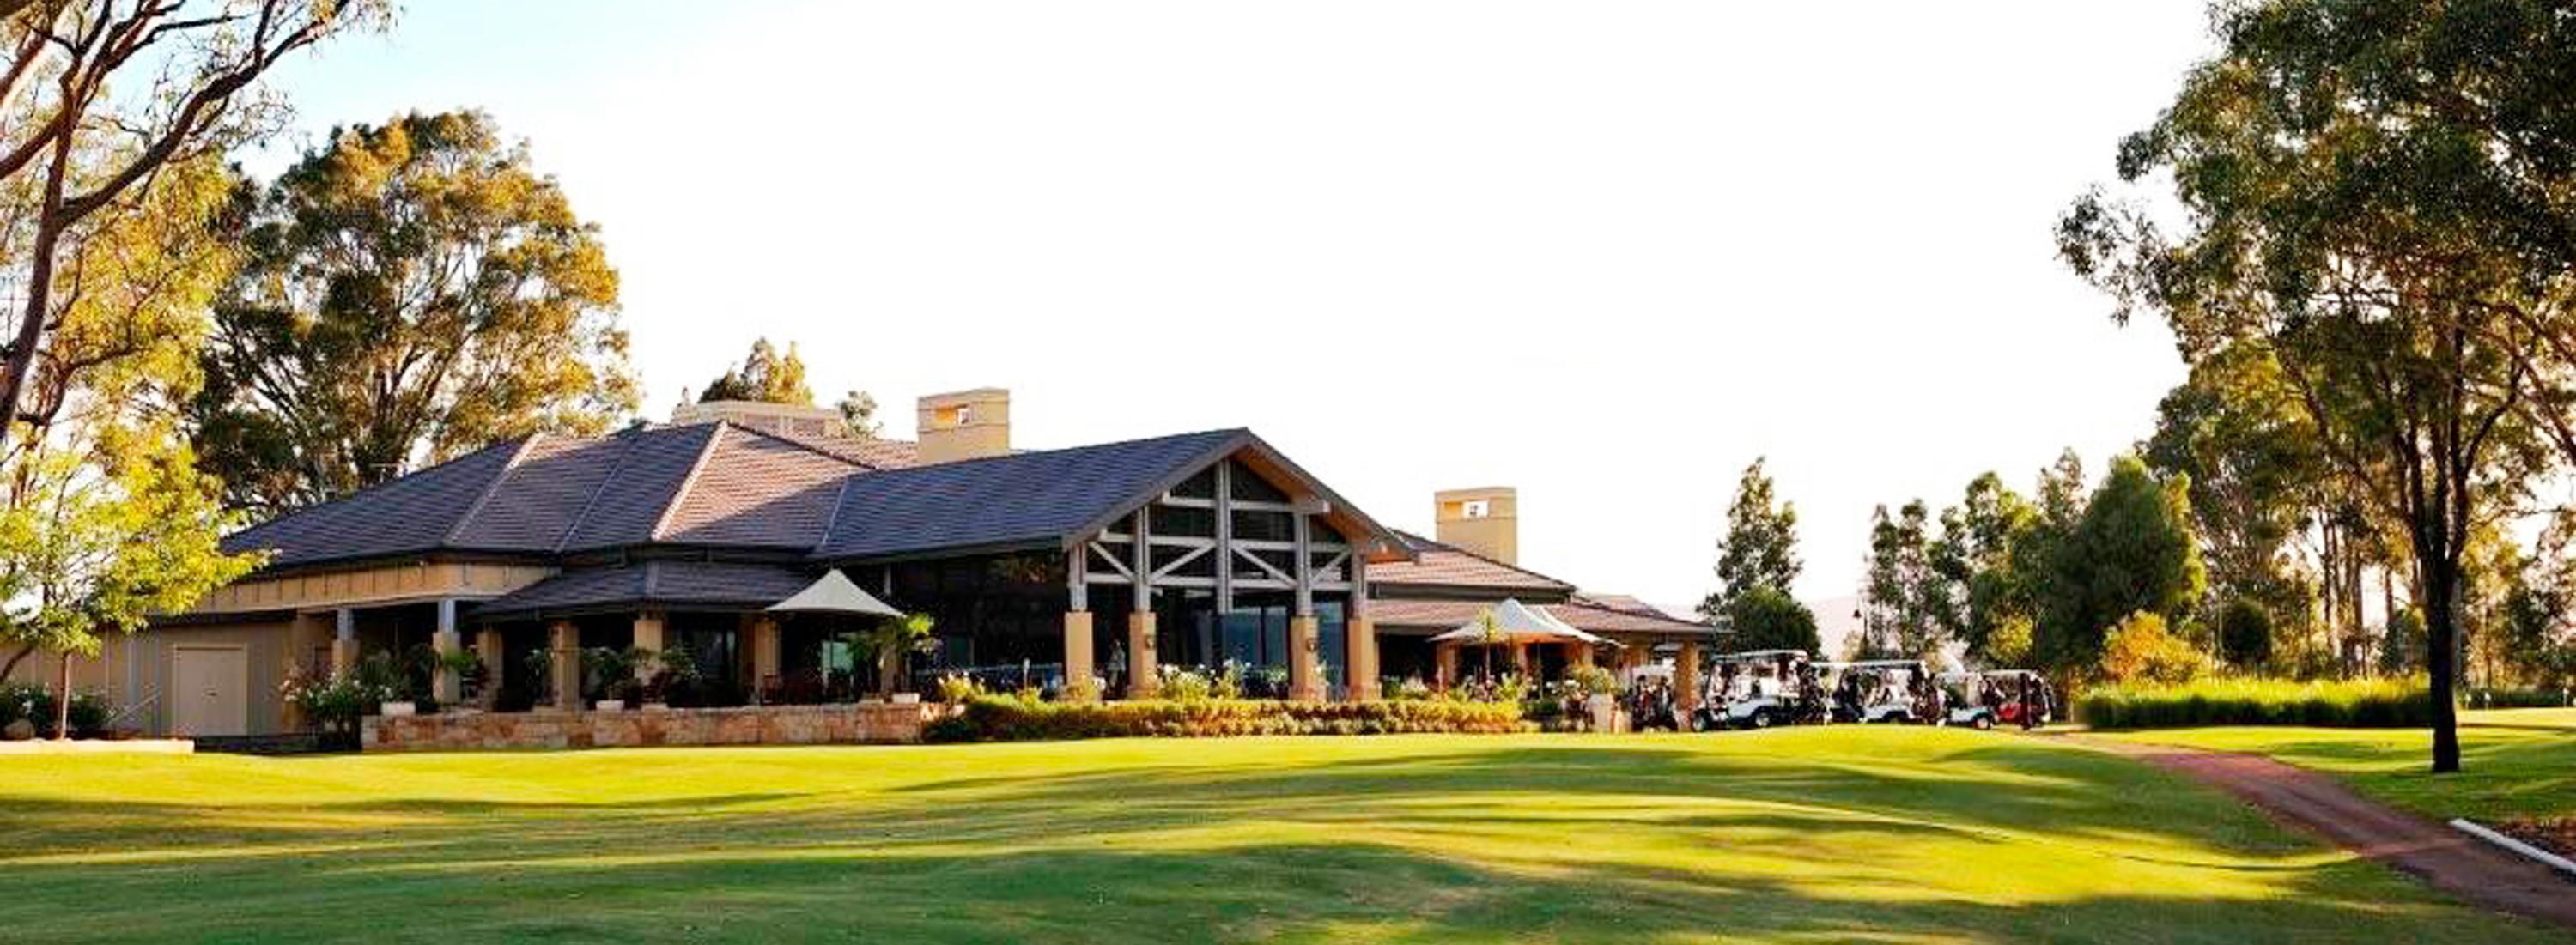 The Vintage Golf Club House external building